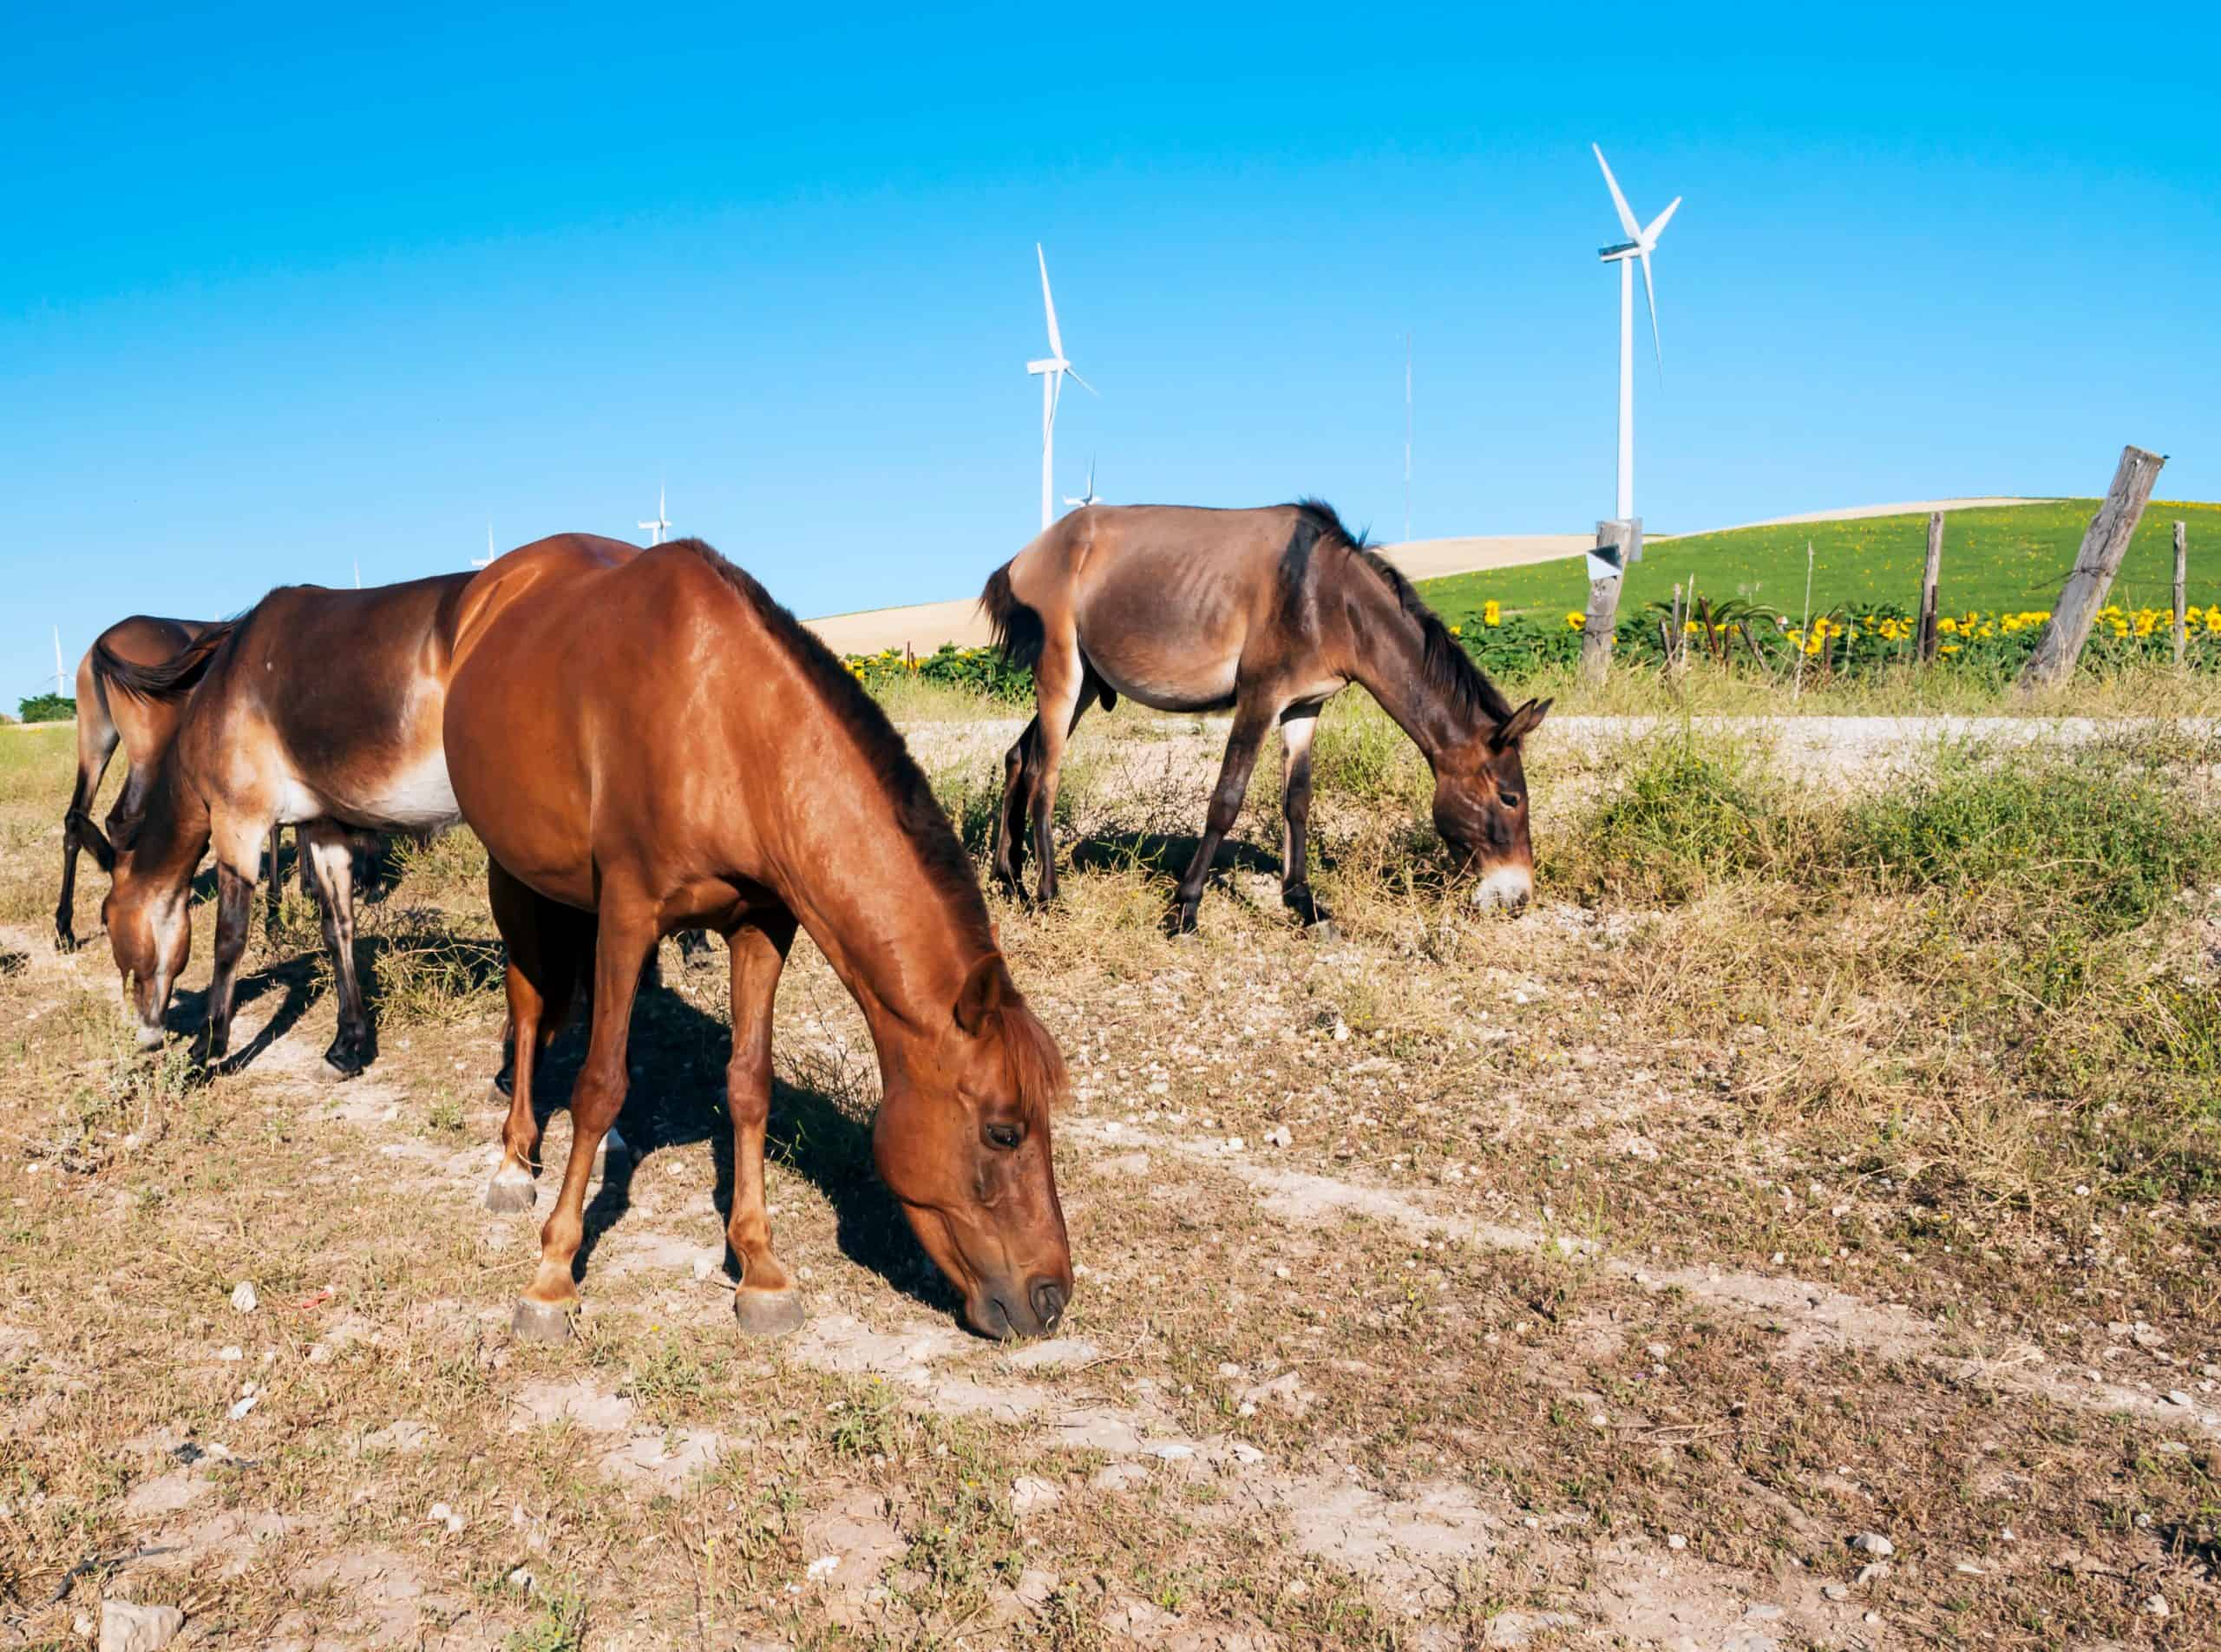 Several horses eating near a field of sunflowers with vanes at the back under the blue sky